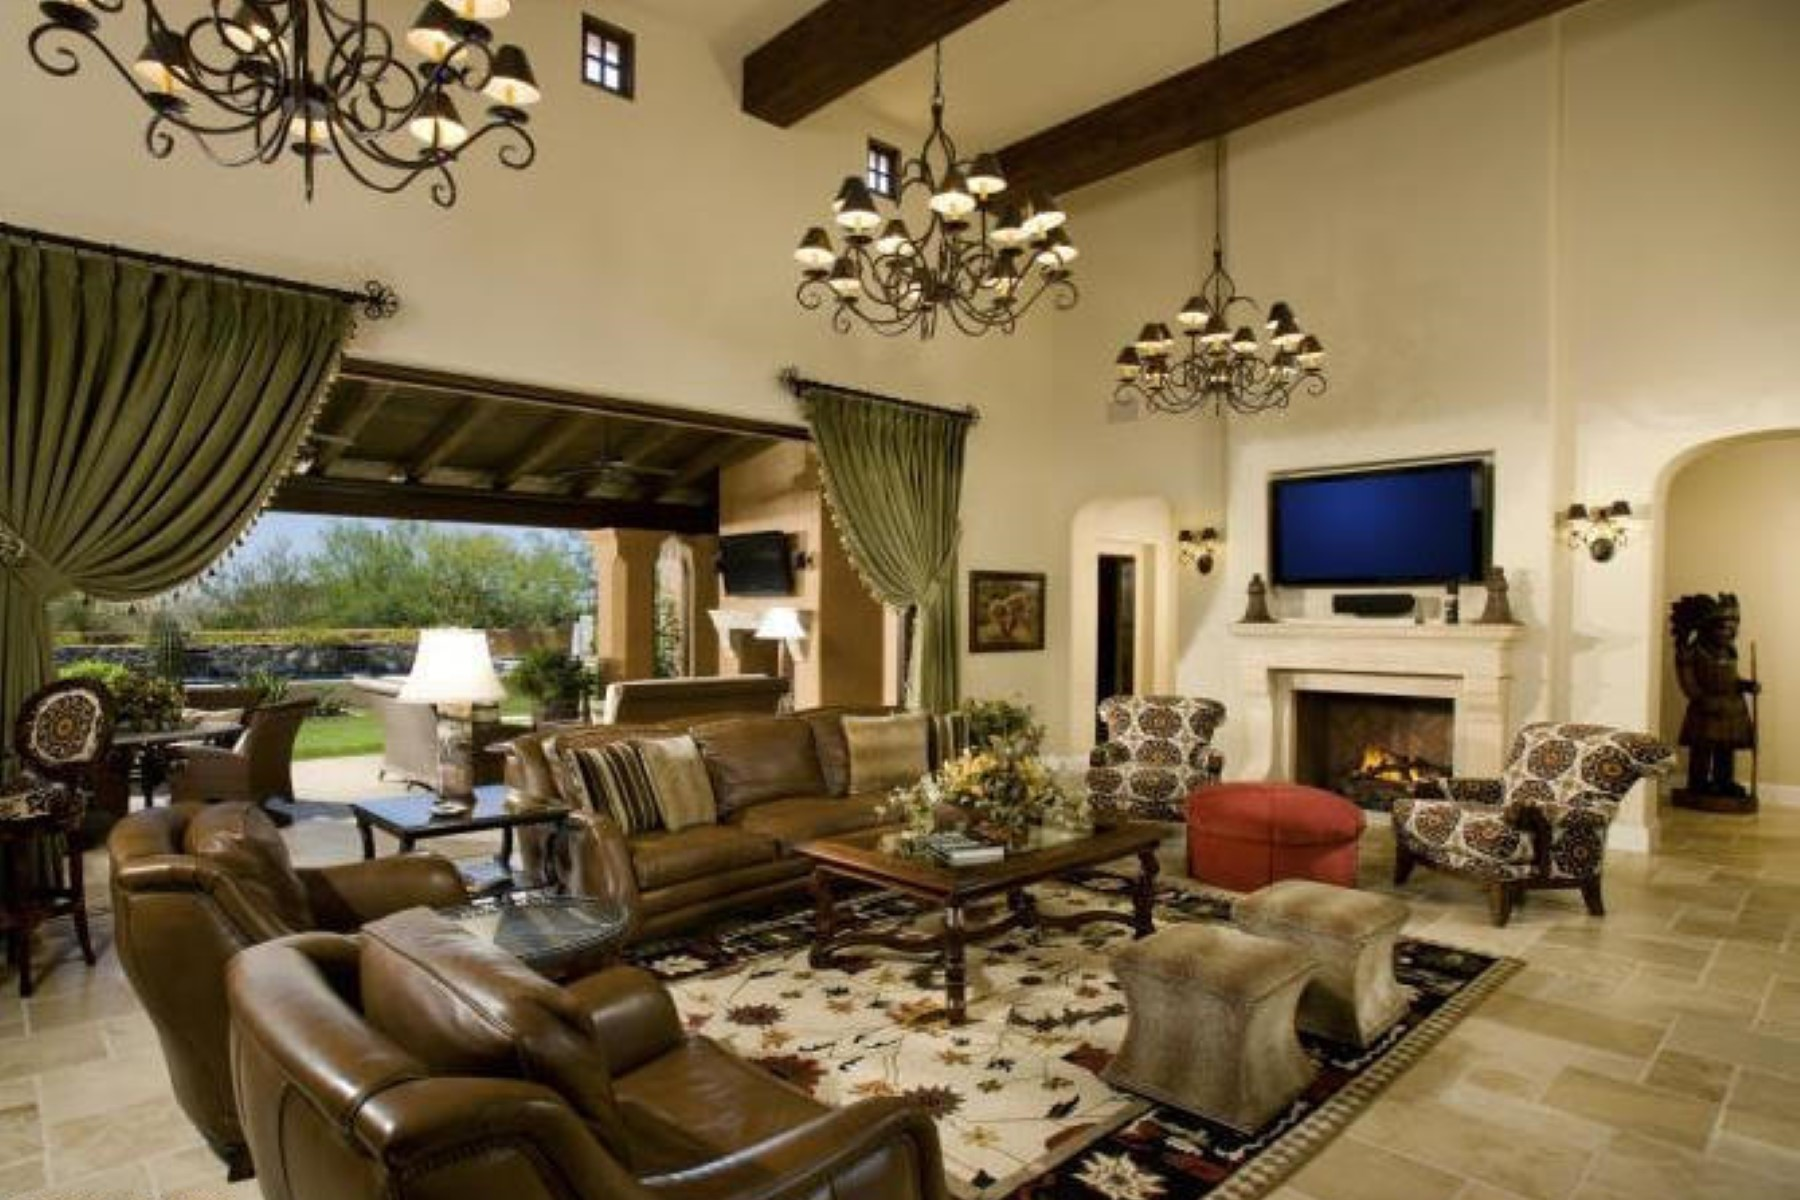 rentals property at Stunning Silverleaf Rental available fully furnished short or long term.